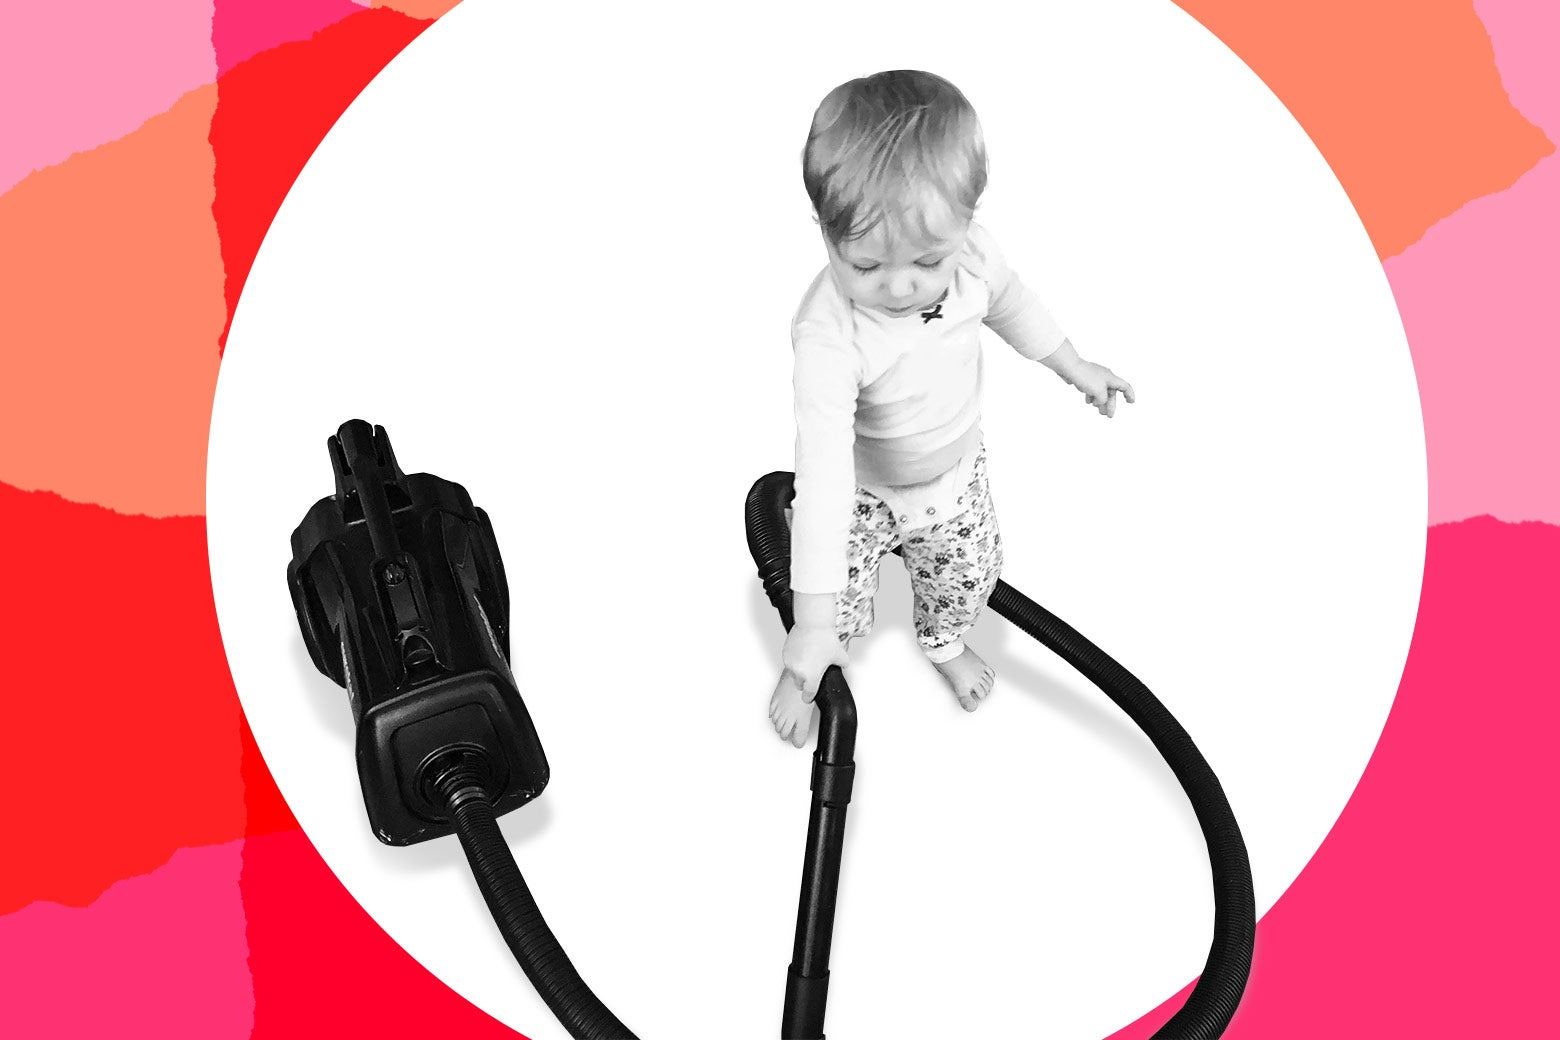 Photo illustration of a child playing with a vacuum.